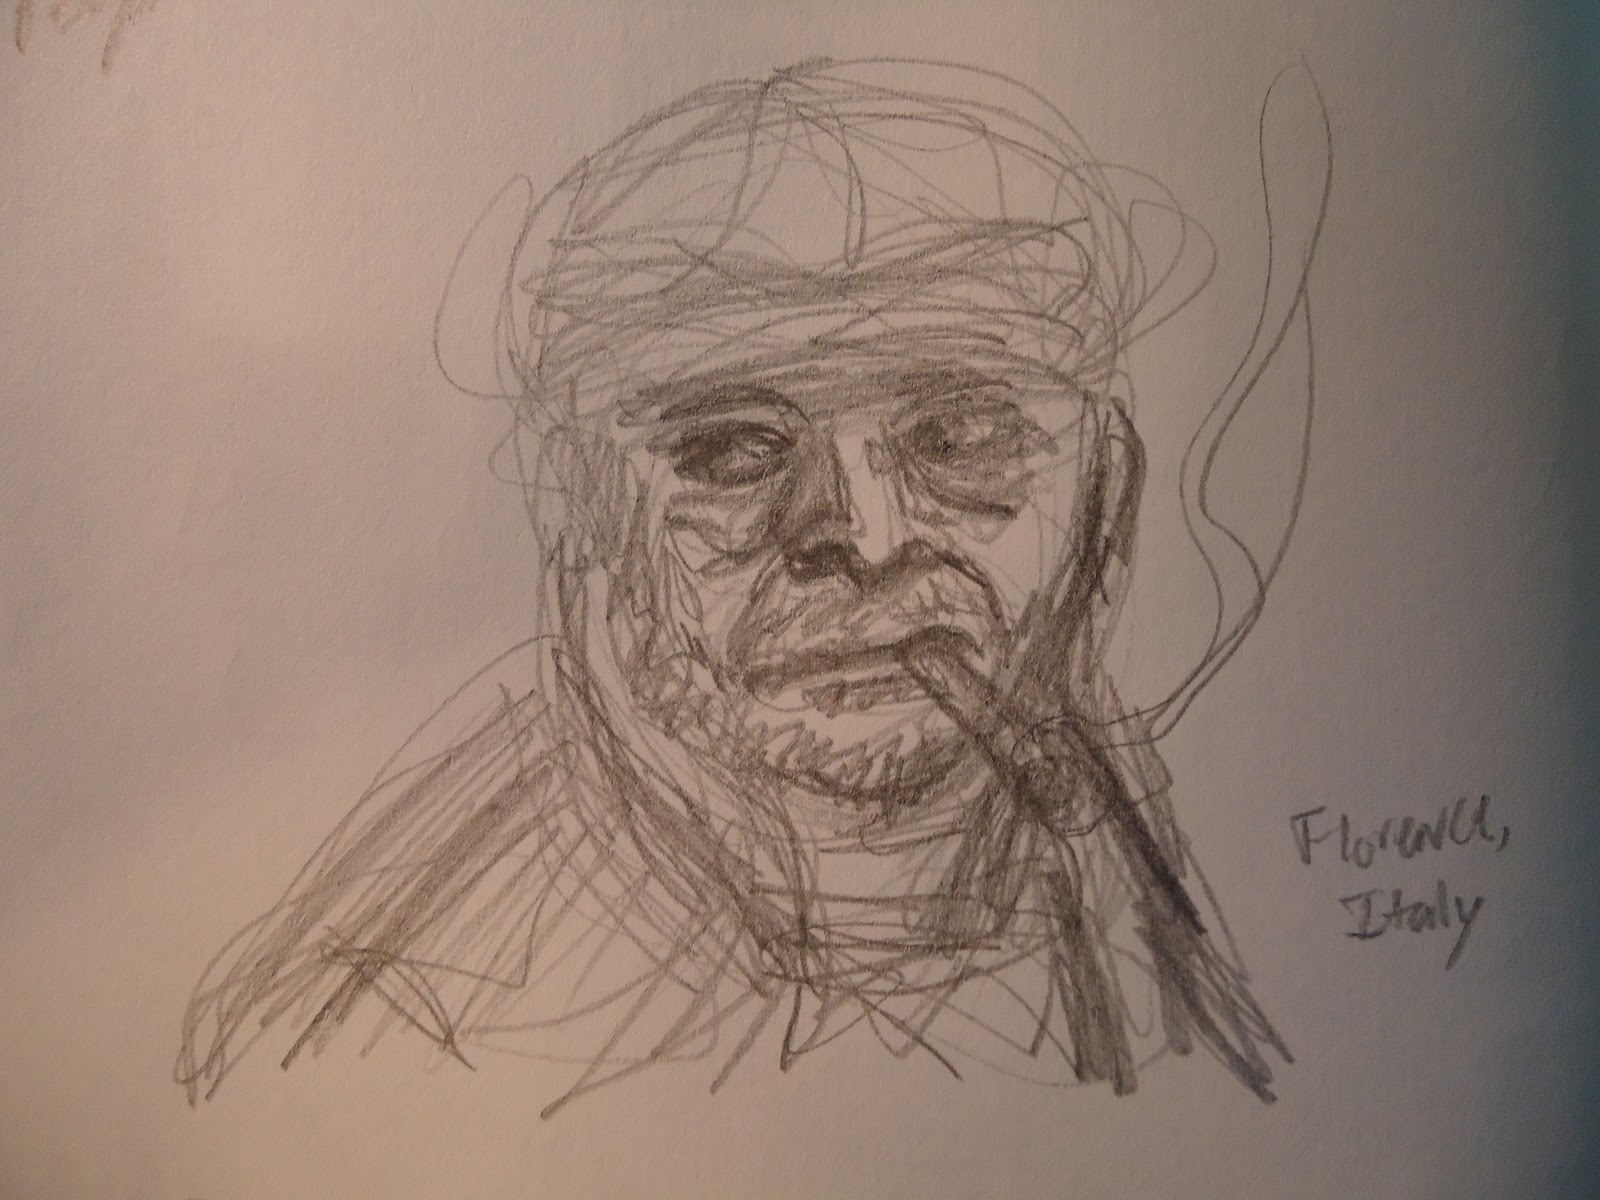 philip a buck a sketch tastic tuesday or people are challenging i used this painting a self portrait by painter tintoretto as reference for the tighter sketch below after my fun squashing and stretching of the figure